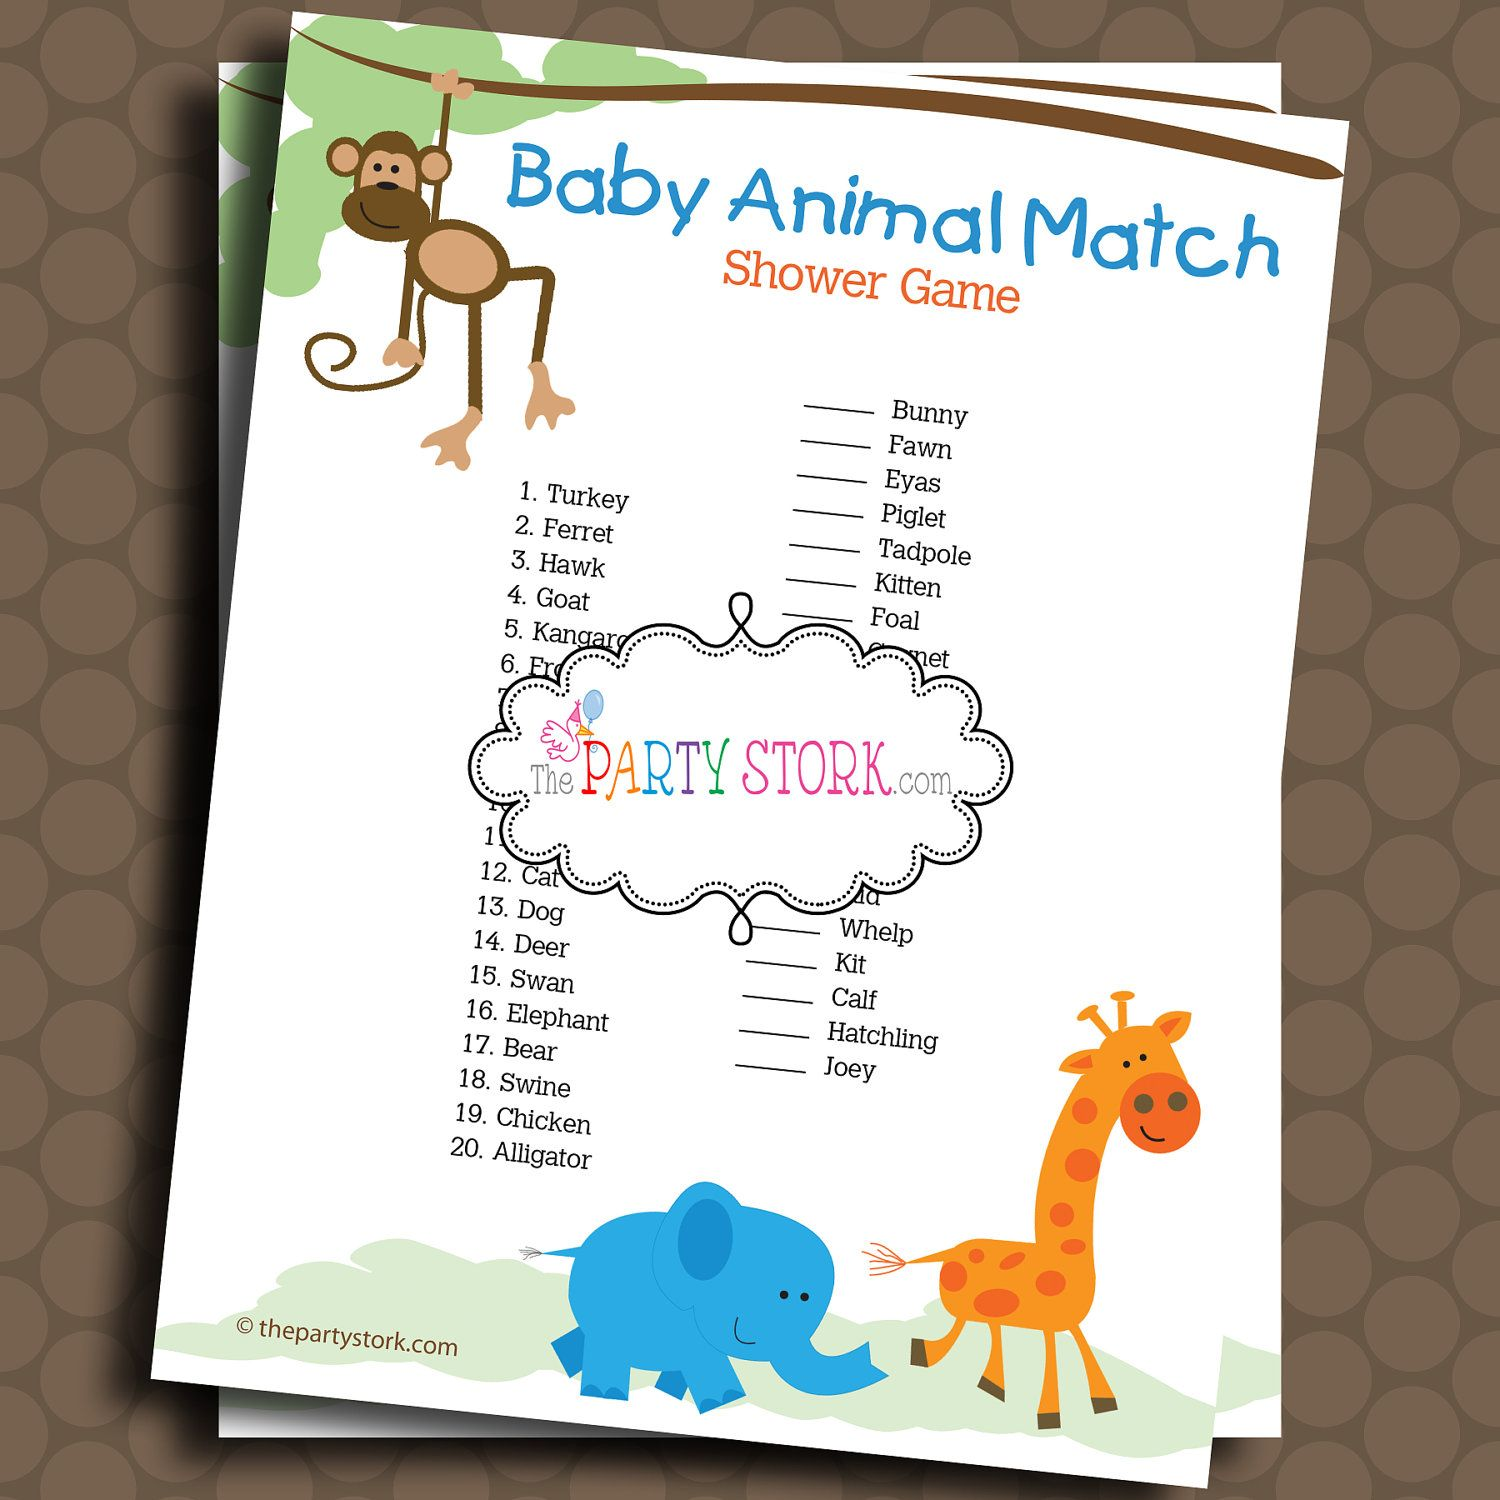 Baby animal match shower game safari theme printable for Bathroom designs games